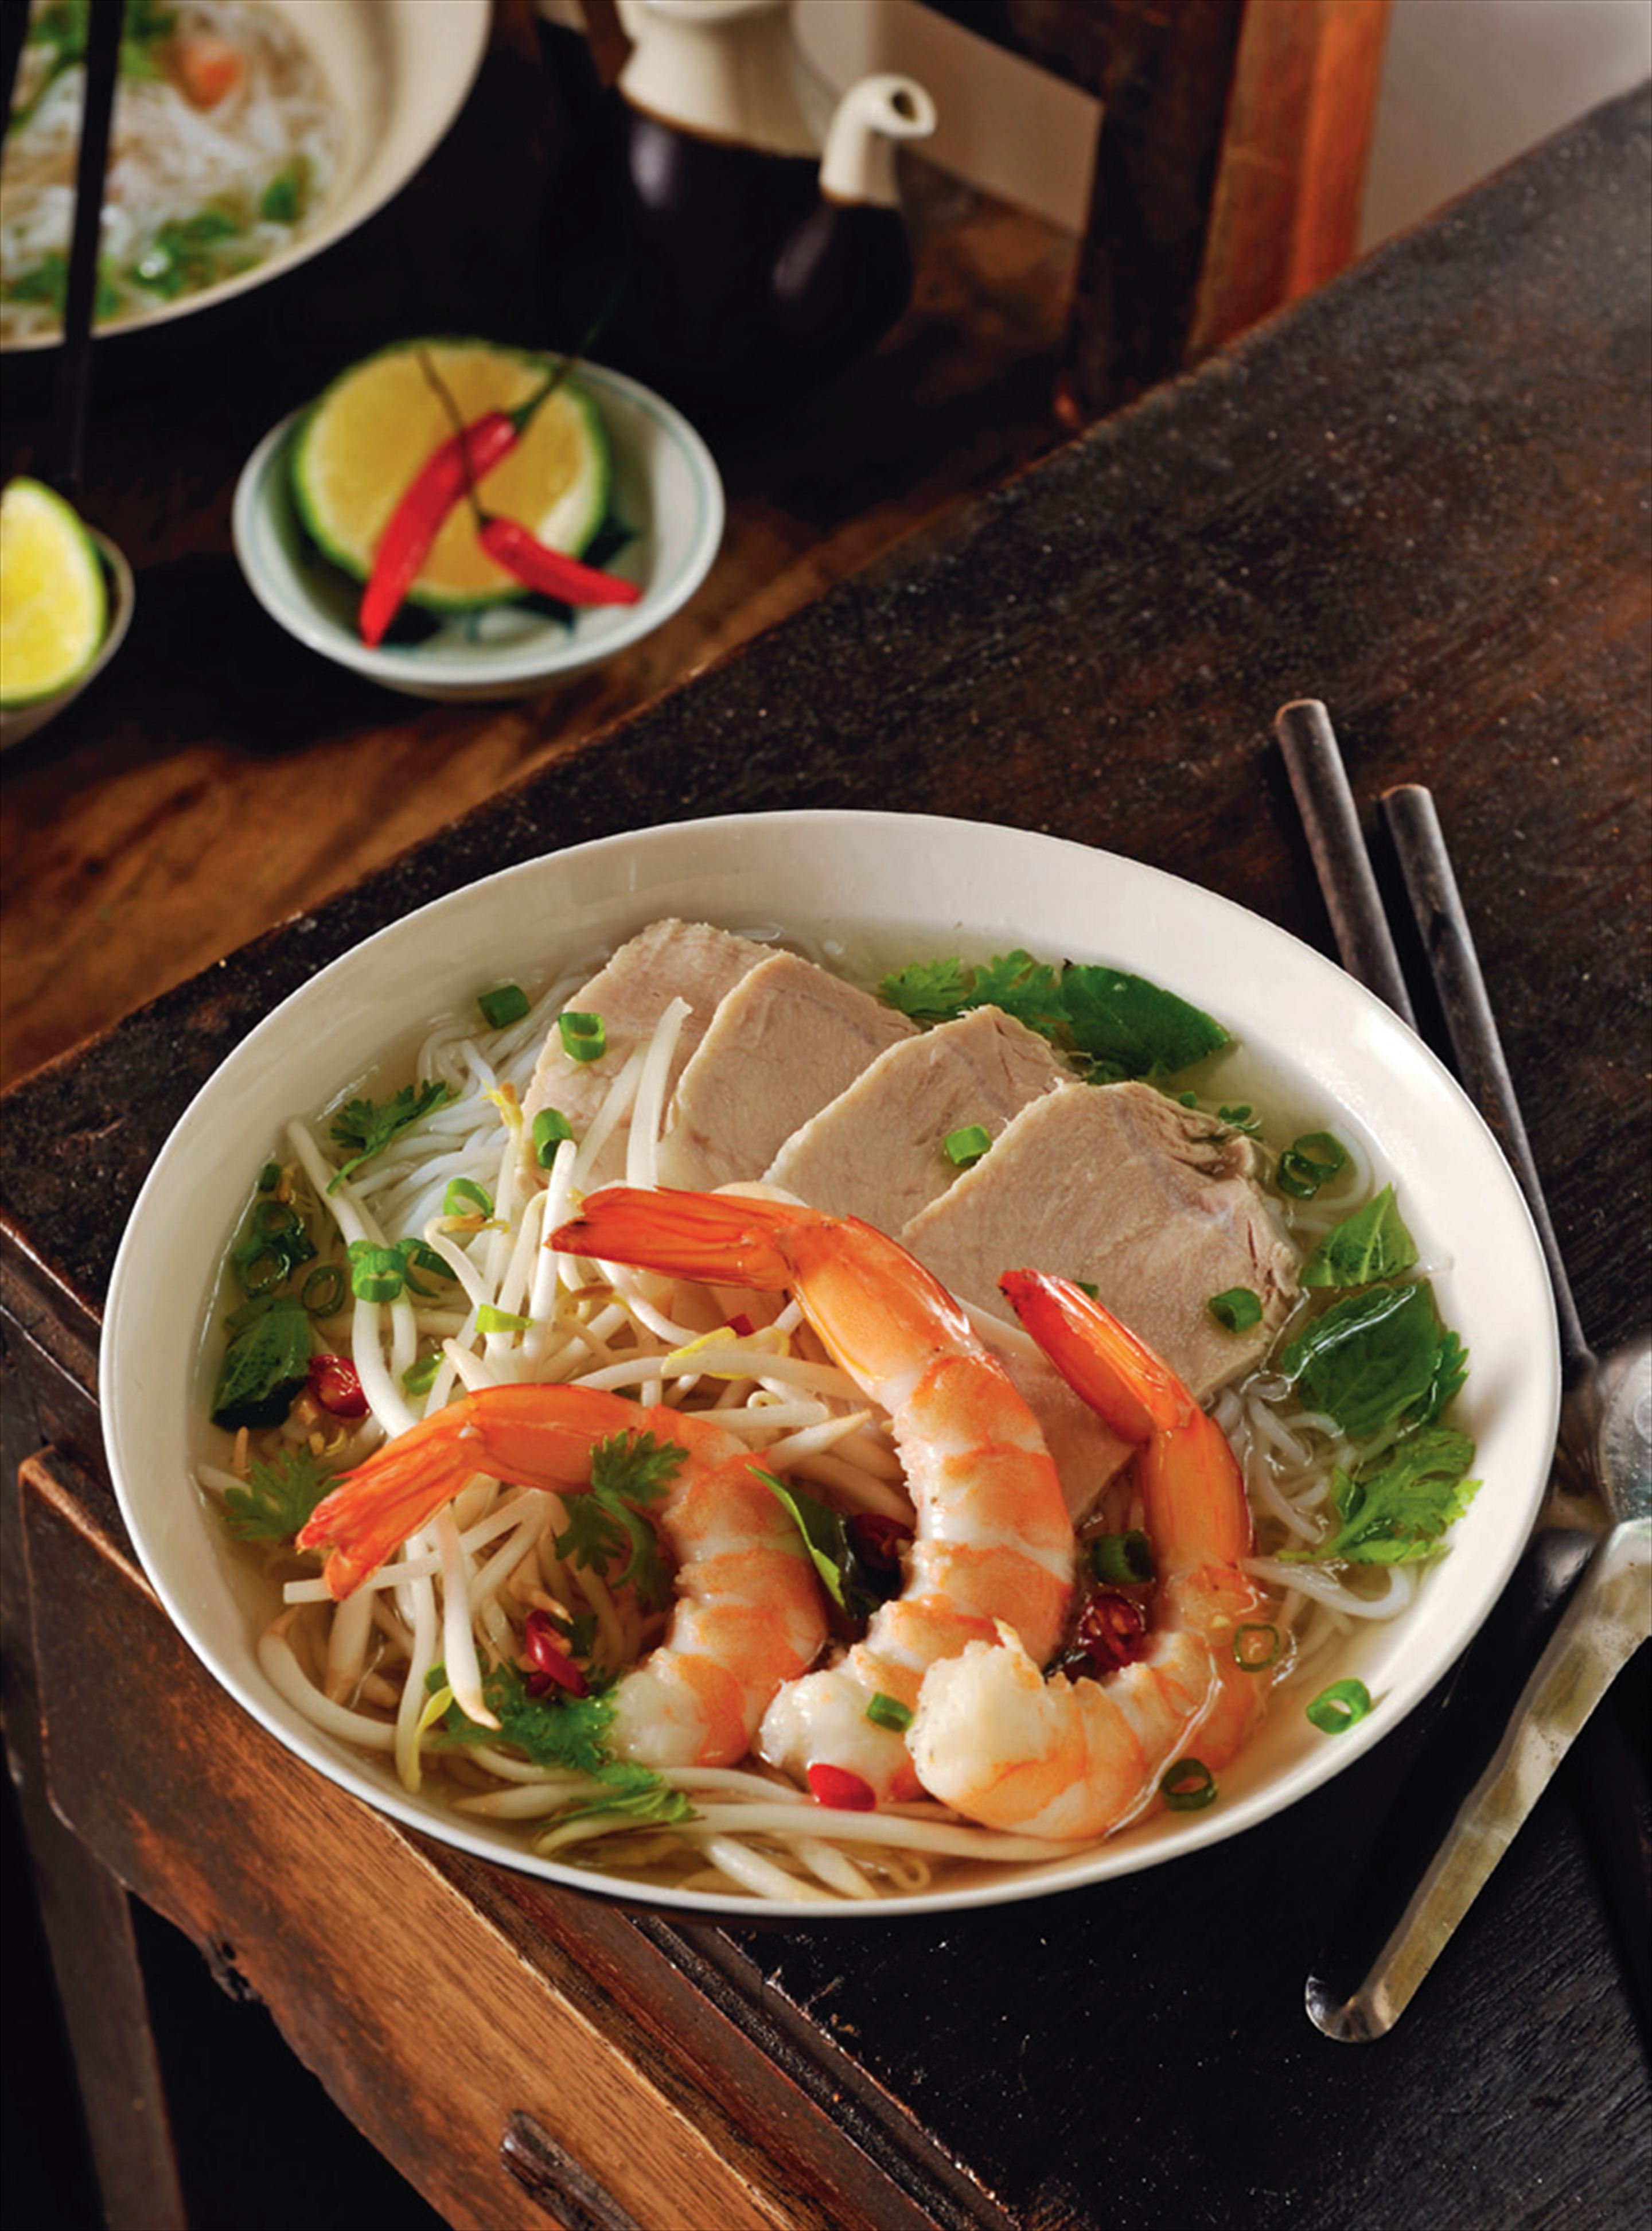 Prawn and pork broth with rice noodles